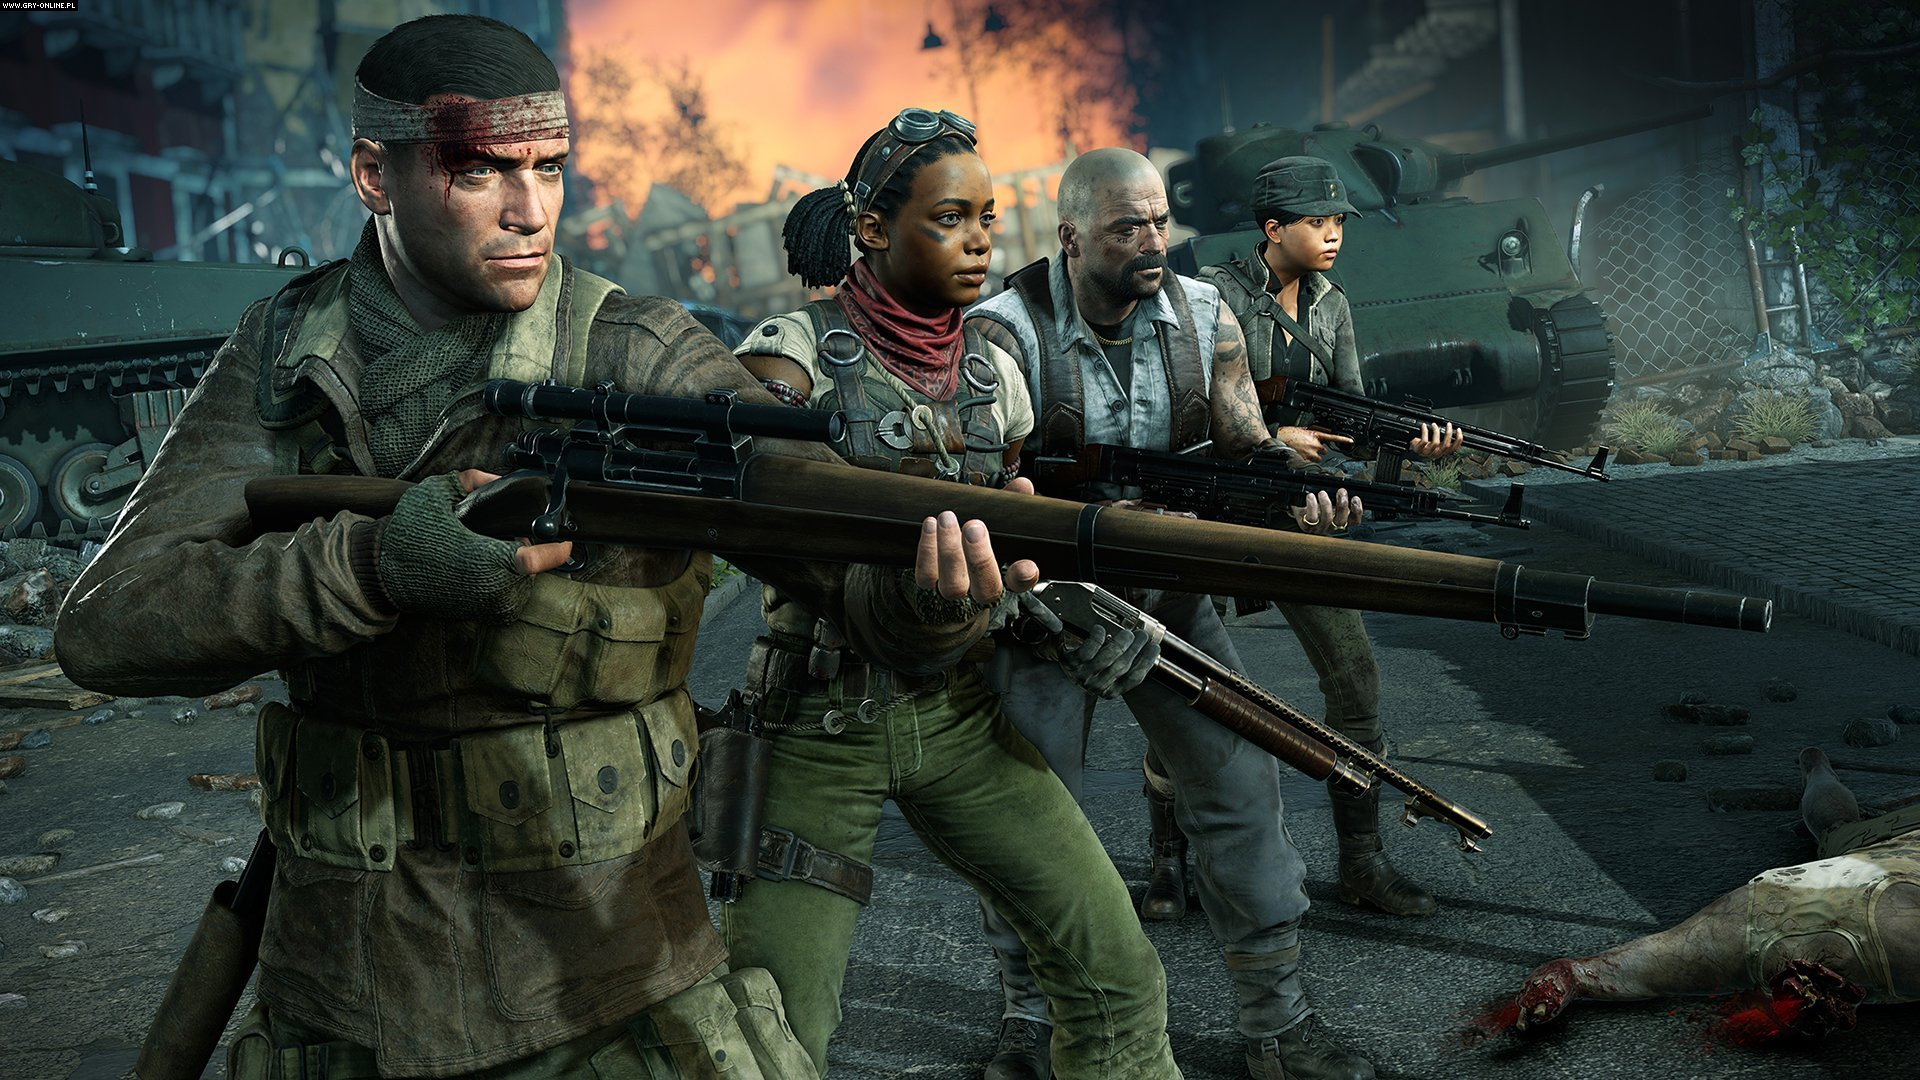 Zombie Army 4: Dead War PC, PS4, XONE Games Image 2/27, Rebellion